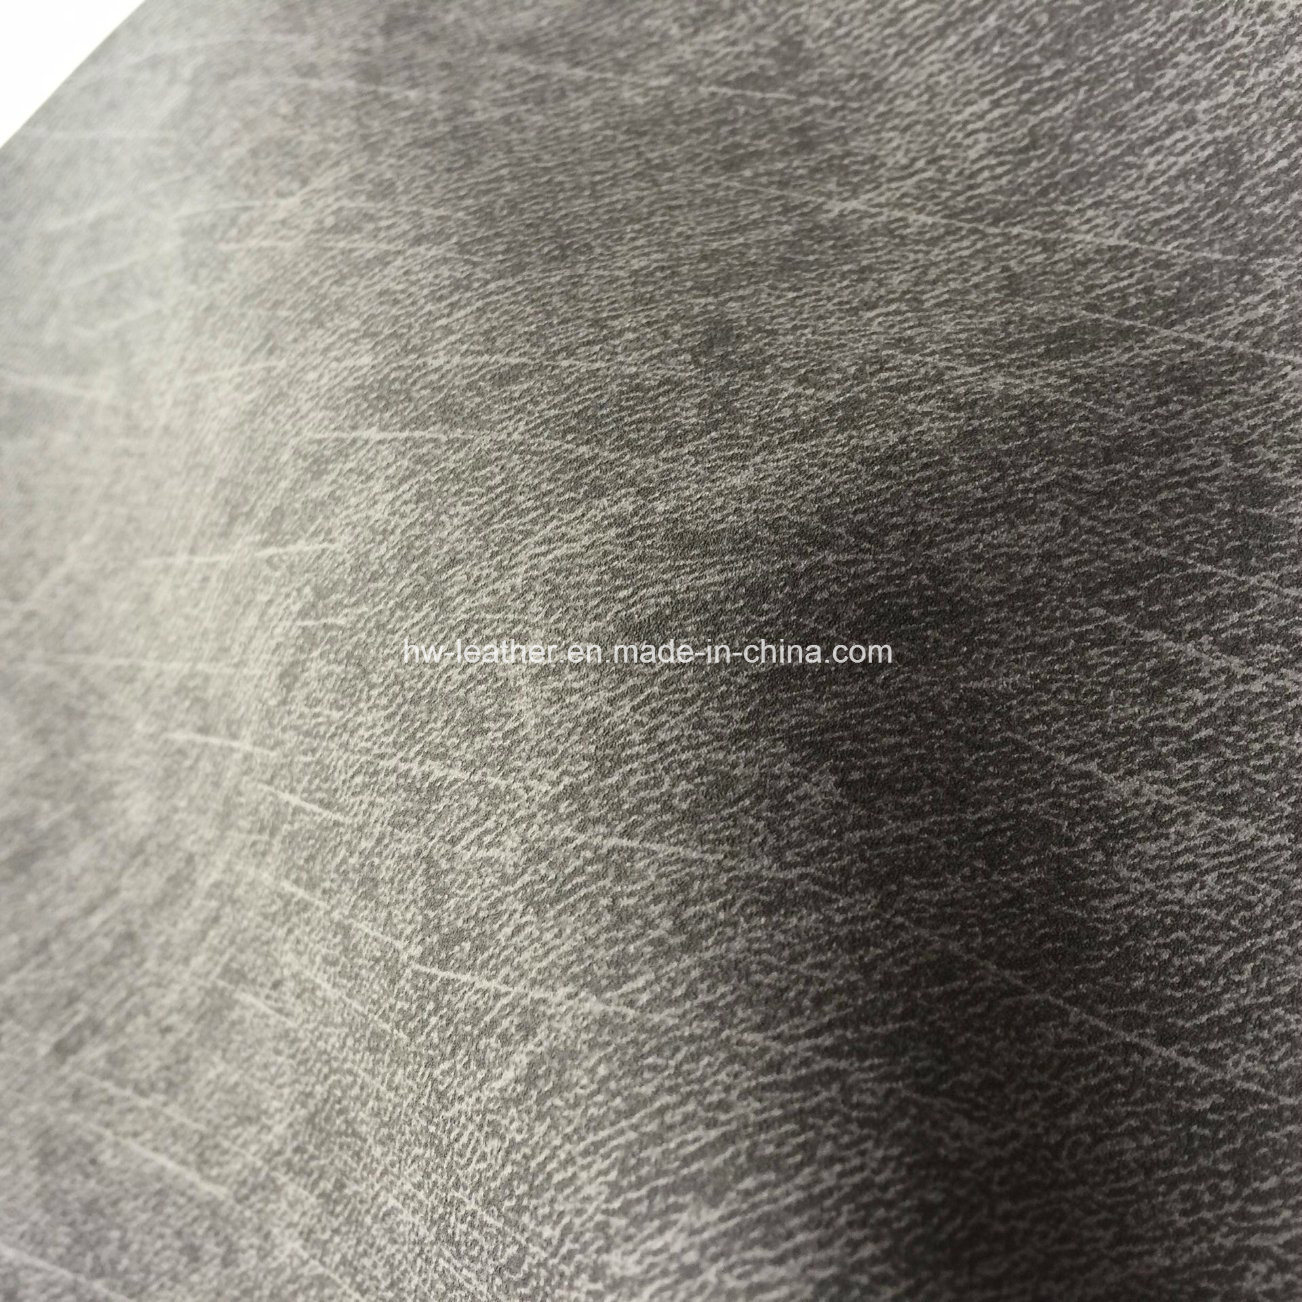 Cloth Imitating Fabric PU Leather for Shoes Bags Hx-S1714